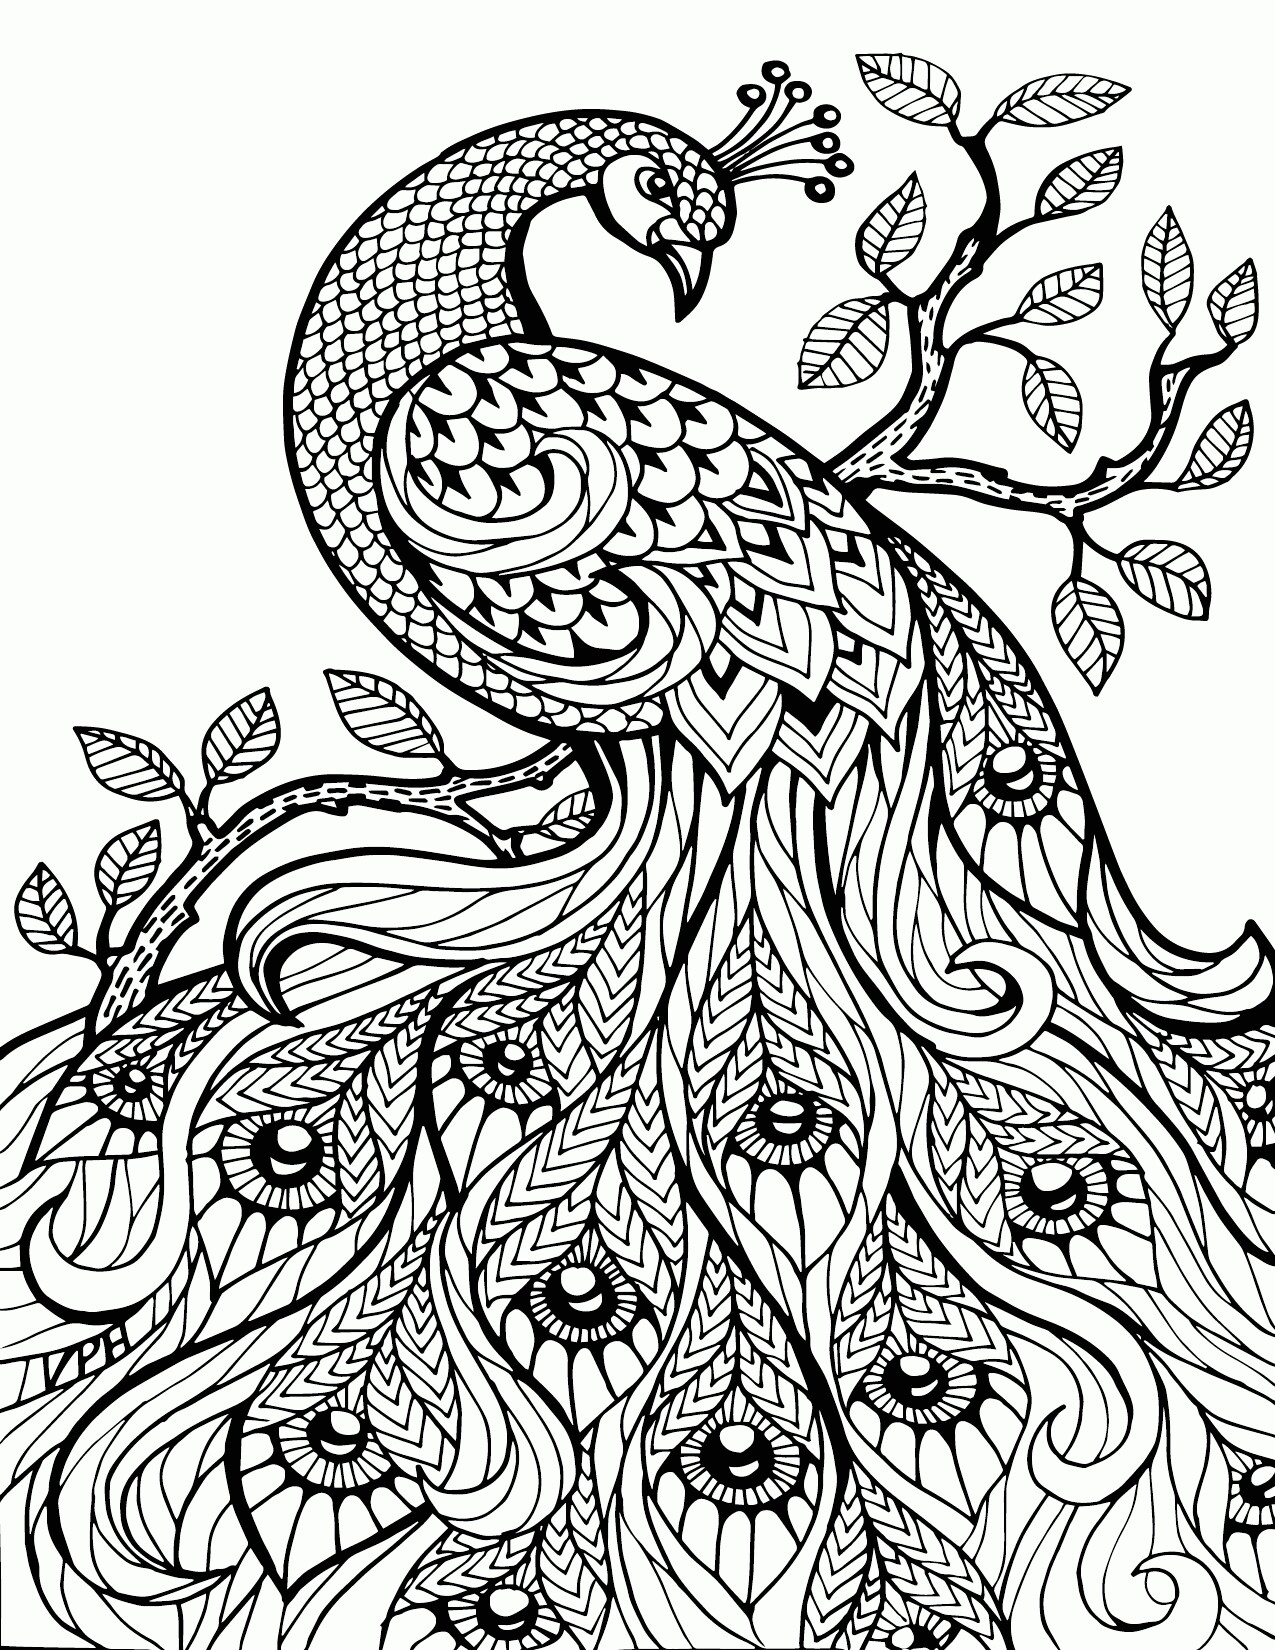 1275x1650 Peacock Feather Coloring Pages Colouring Adult Detailed Advanced